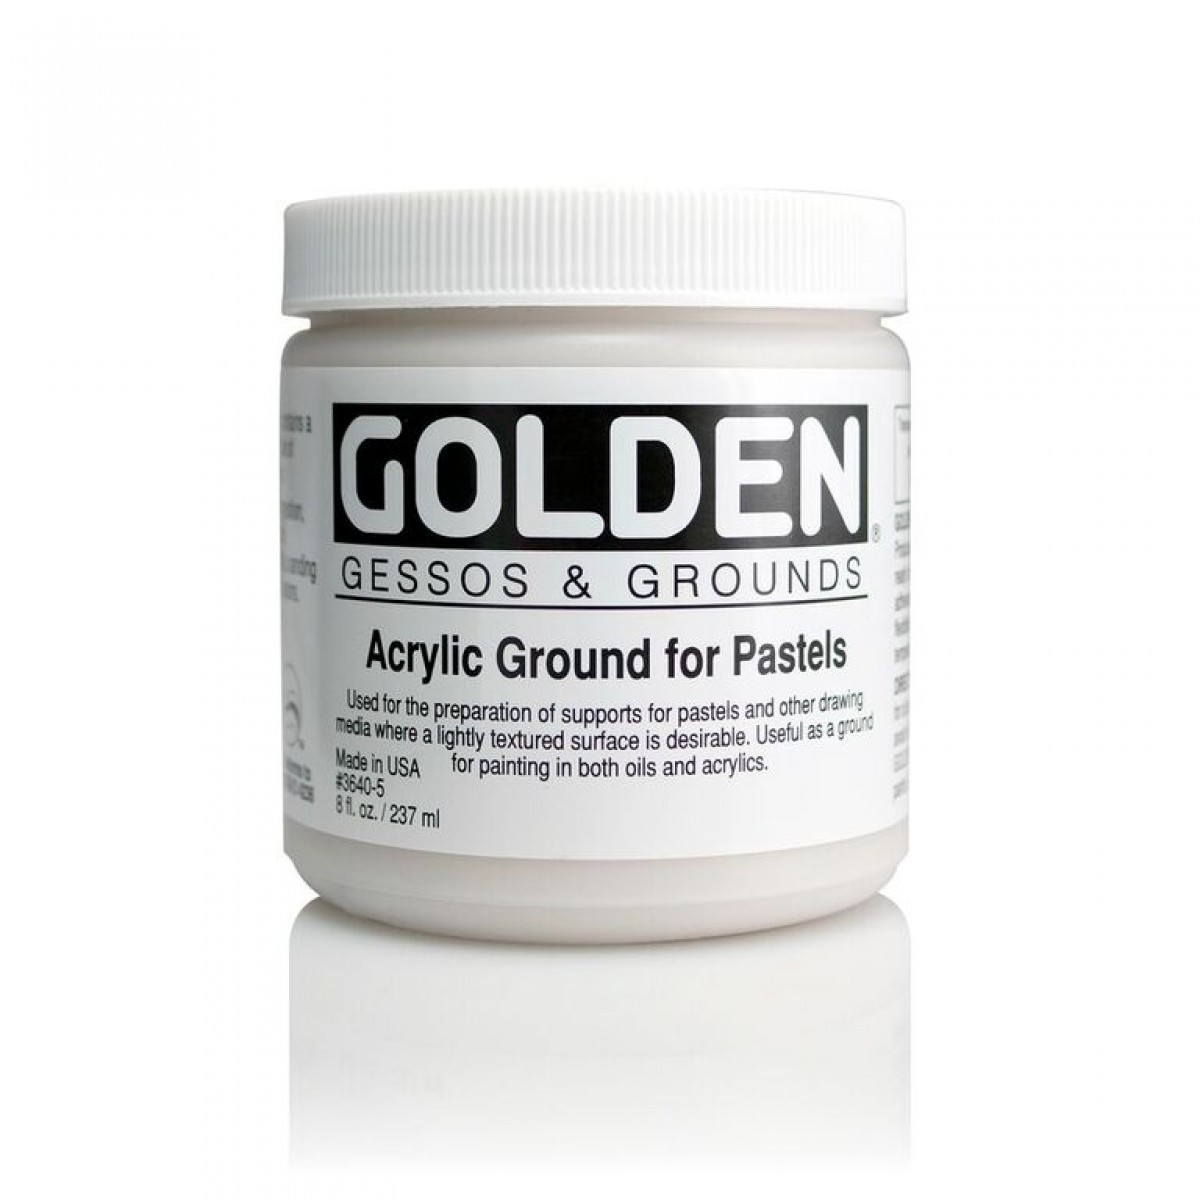 GOLDEN Ground for Pastels 237ml.